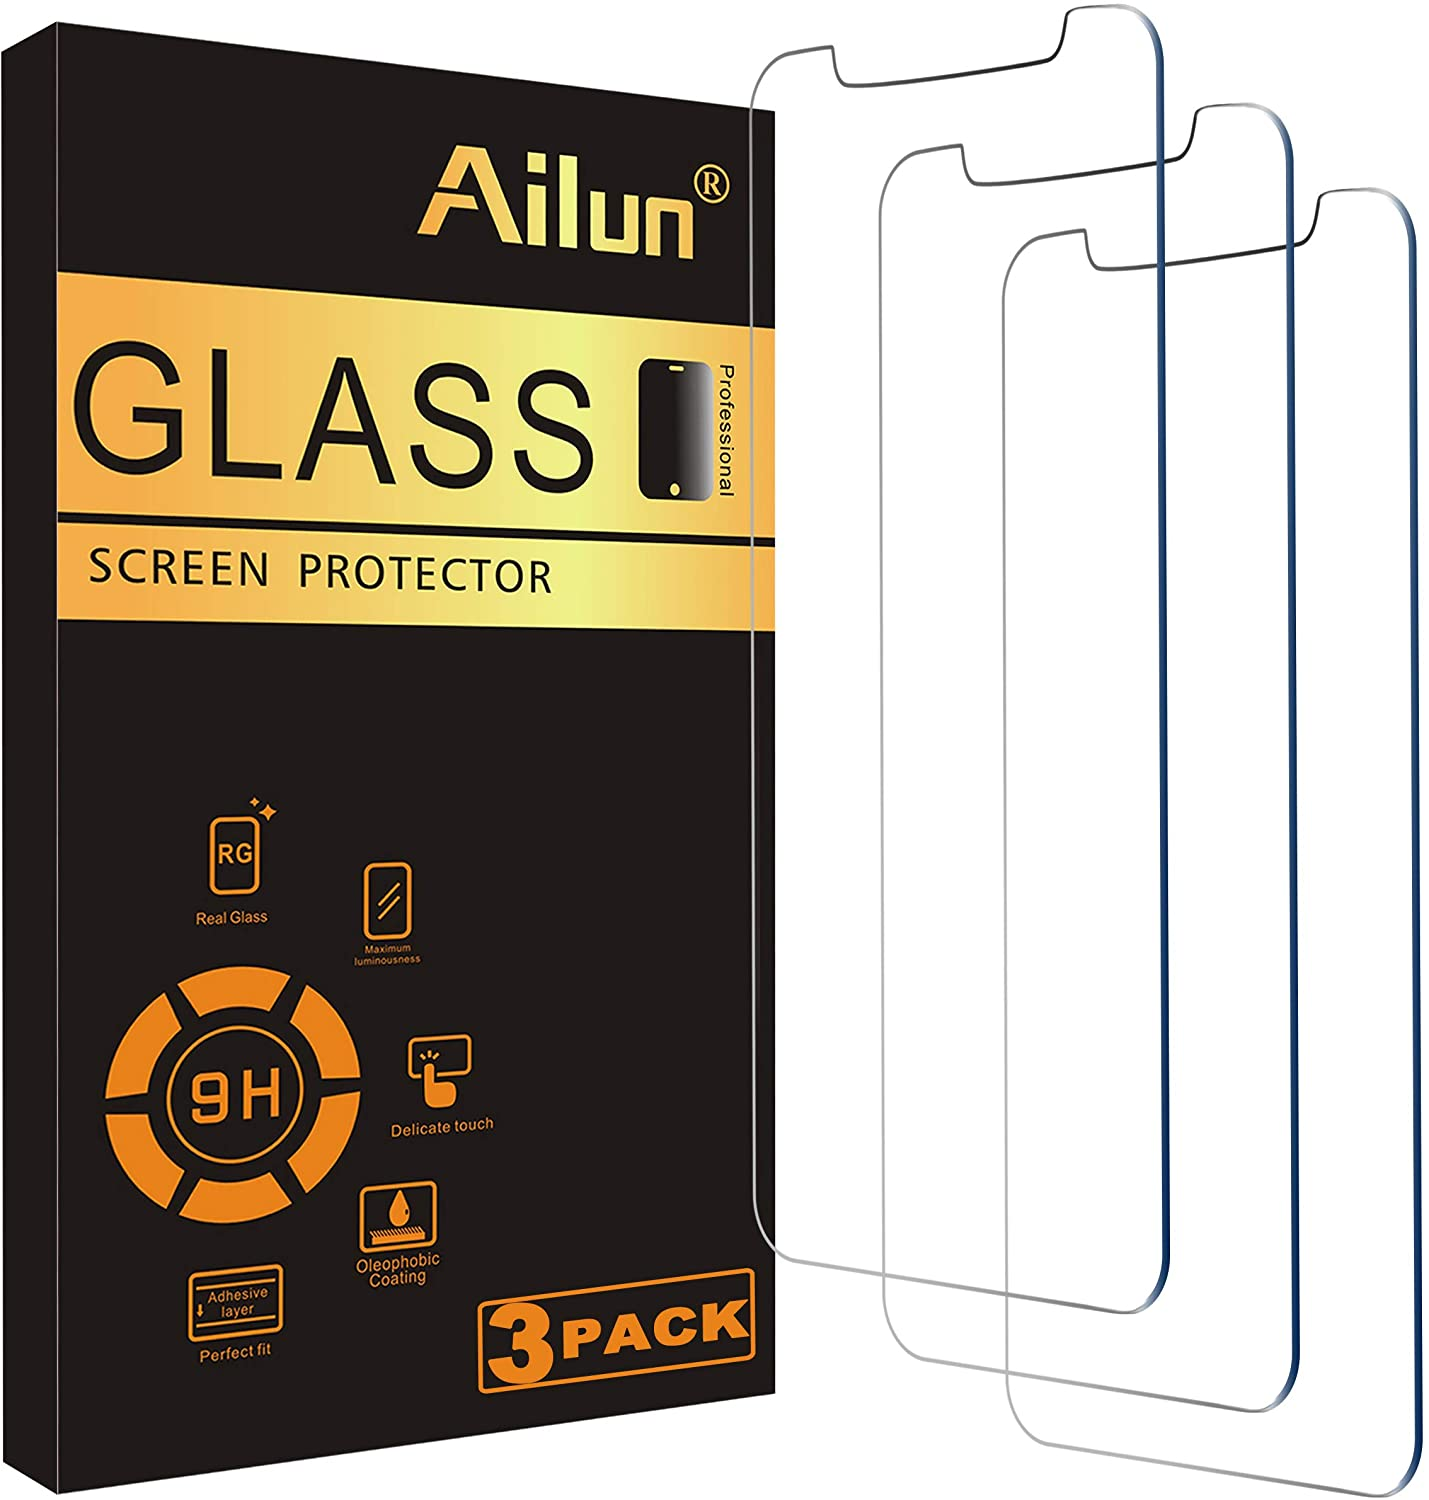 Save 25% on iPhone XS, iPhone X, iPhone 11 Pro Screen Protector